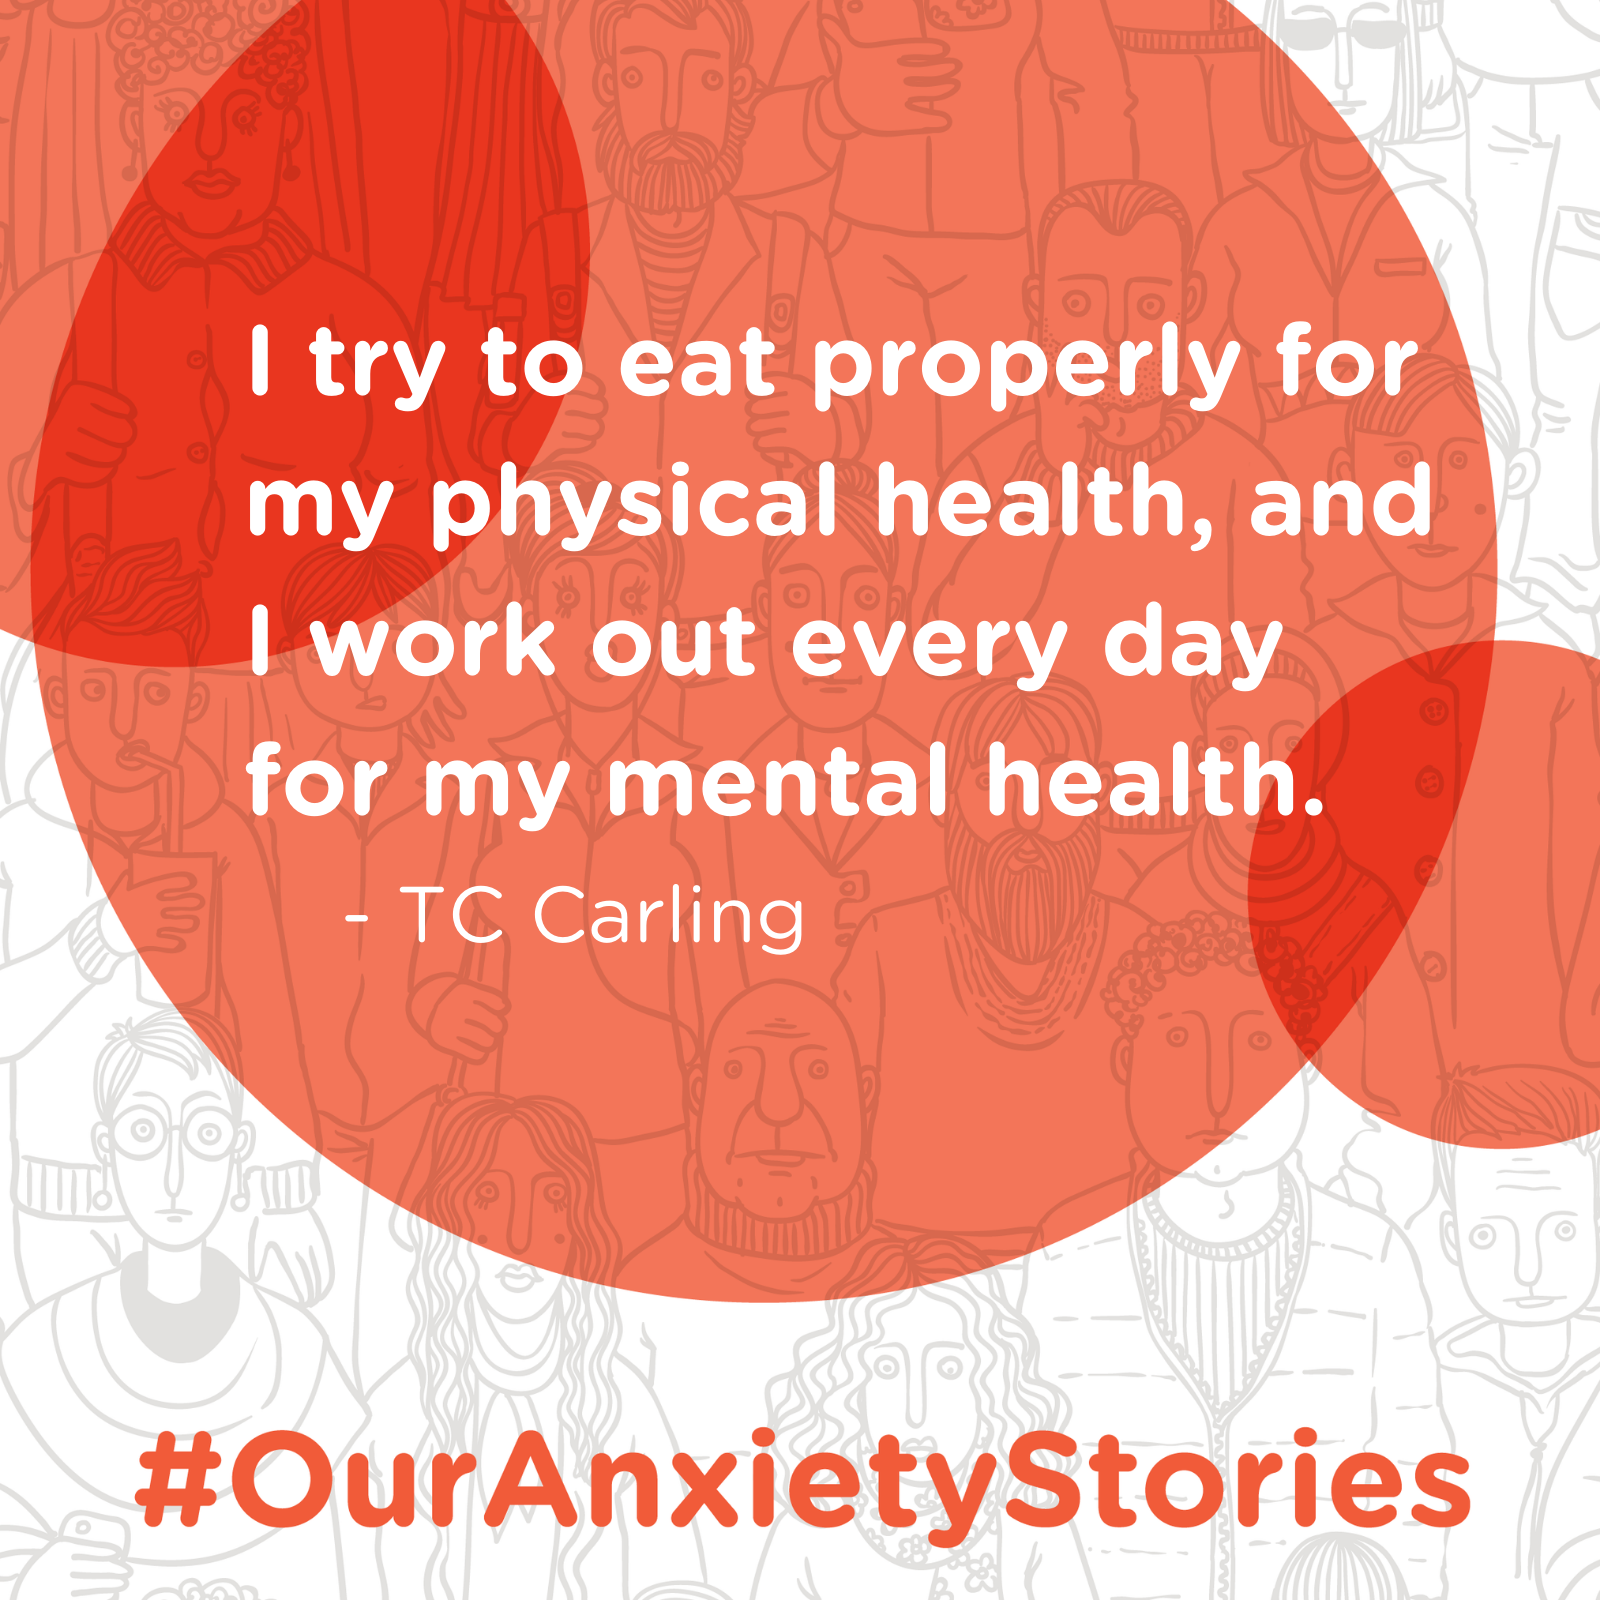 Men's Mental Health: Anxiety and More with TC Carling